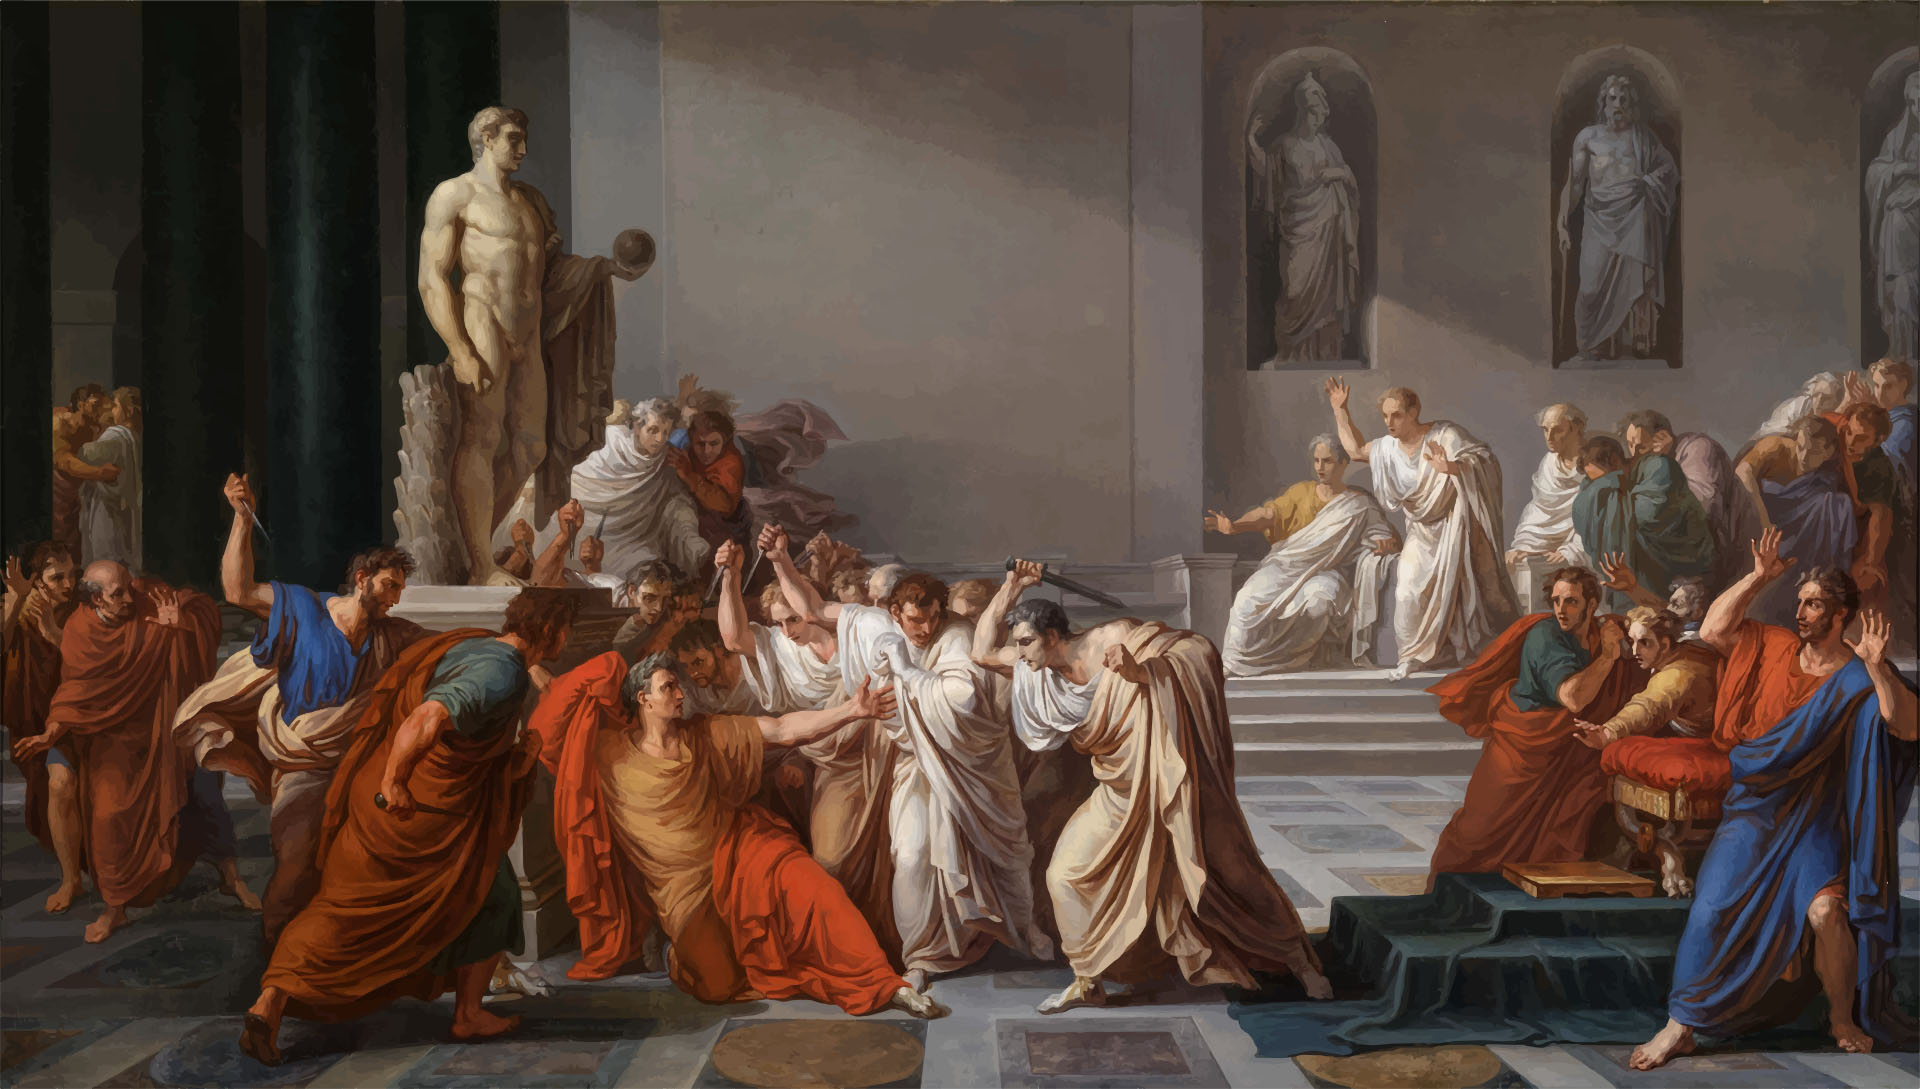 Assassination of Julius Caesar – Ides of March (March 15) – 44 BC